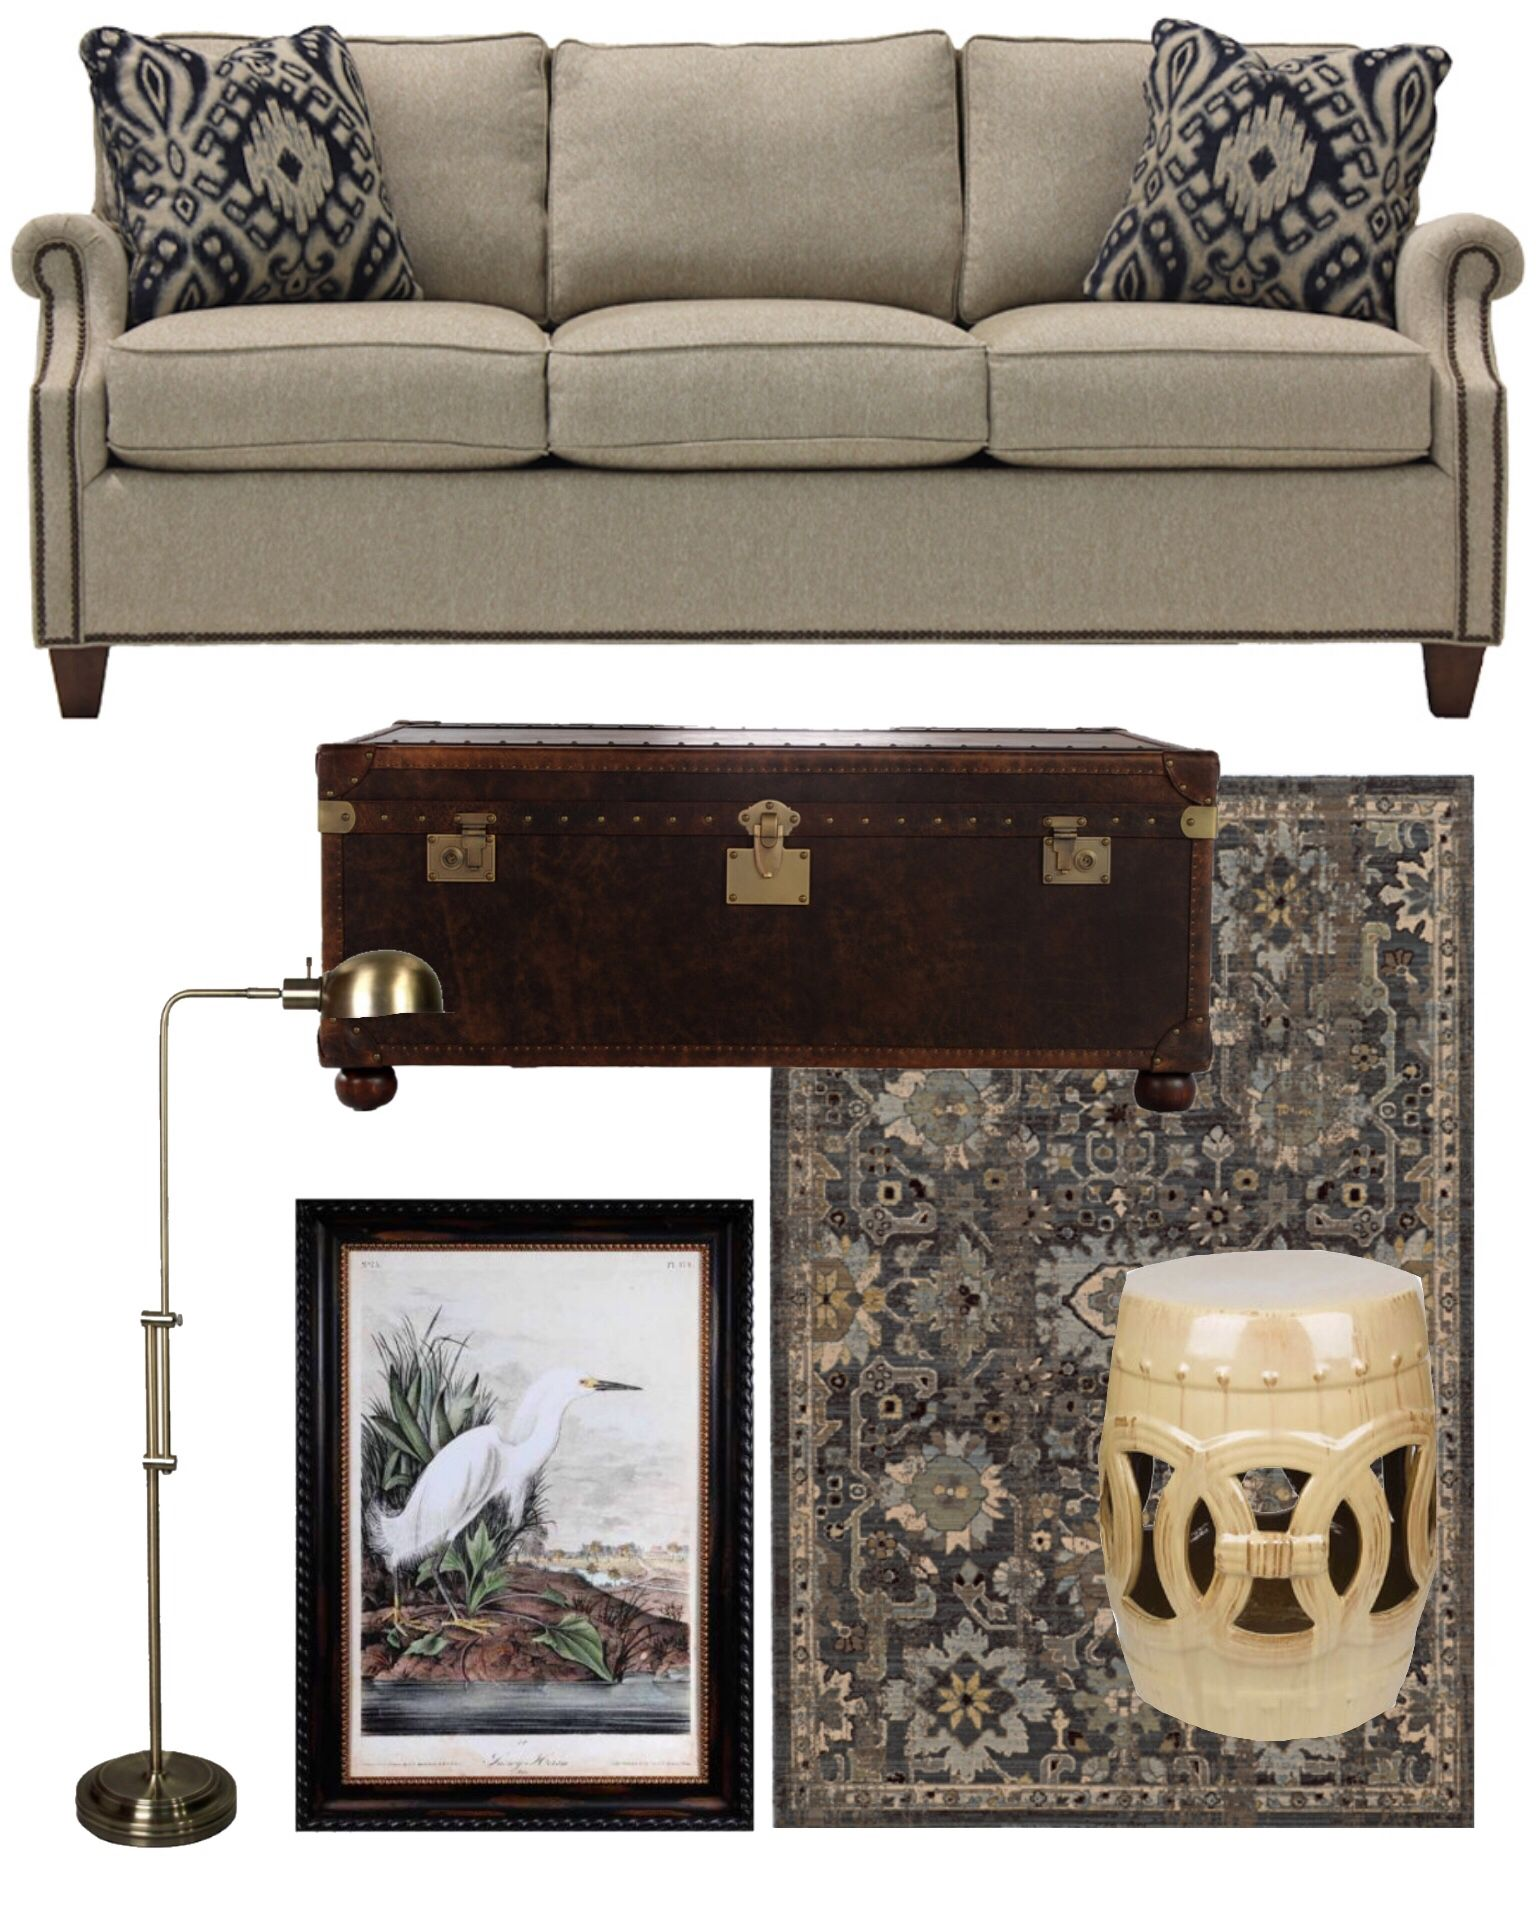 High Quality Transitional Inspiration At Turners Fine Furniture